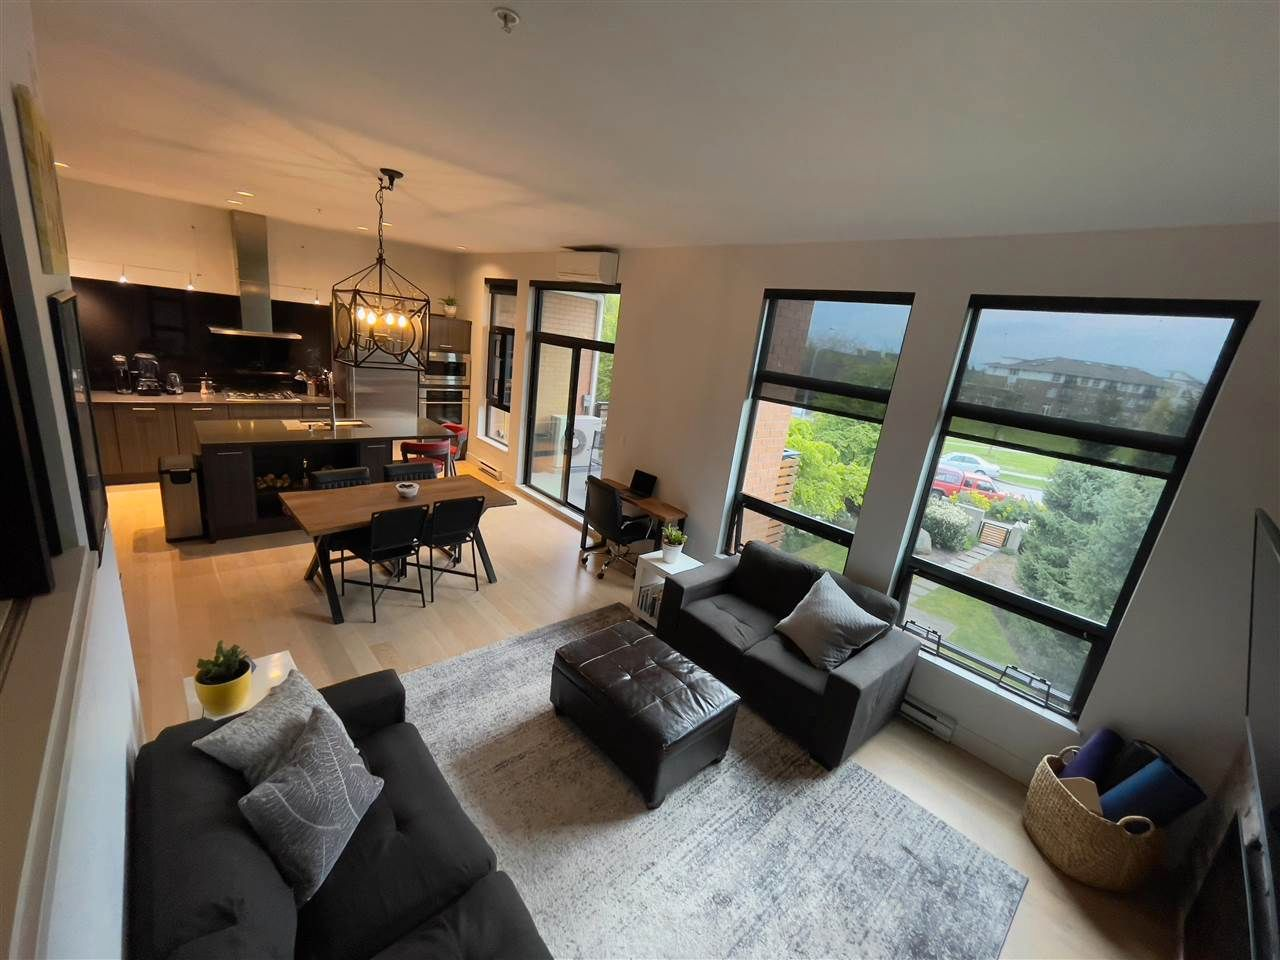 Photo 9: Photos: 205 220 SALTER Street in New Westminster: Queensborough Condo for sale : MLS®# R2588294